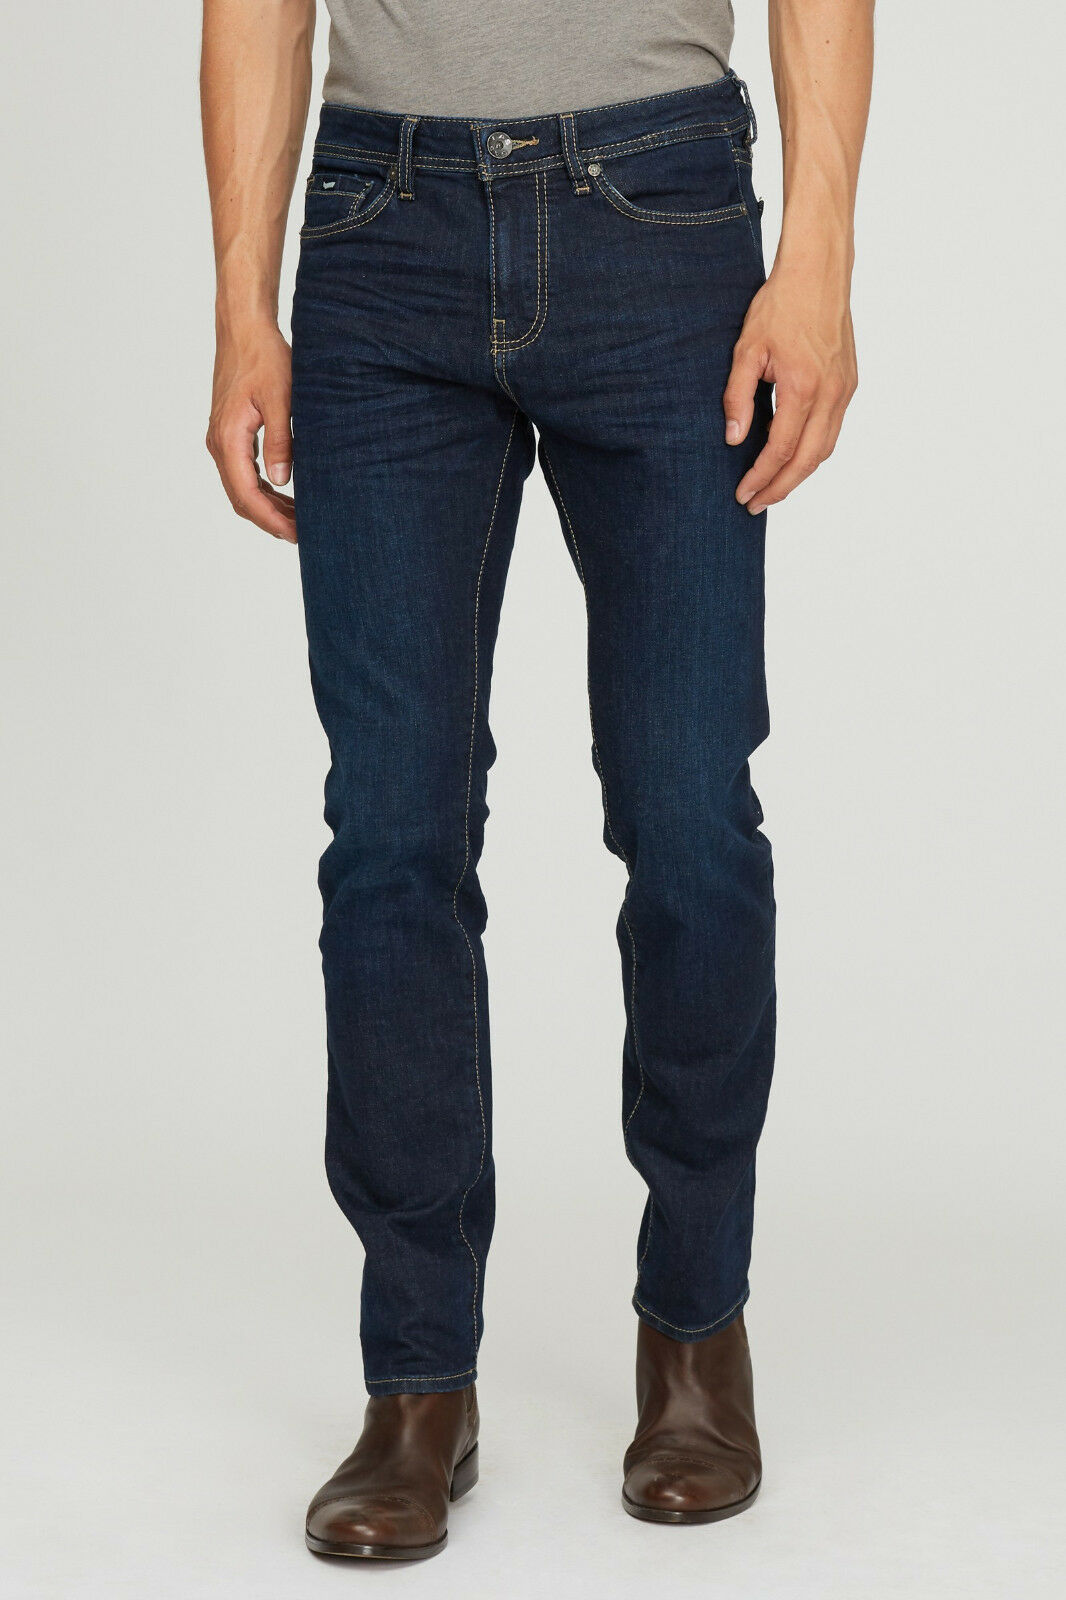 JEANS GAS ALBERT SIMPLE WK12 NEW BEST PRICE PANTALONE DENIM SLIM PARTICOLARE